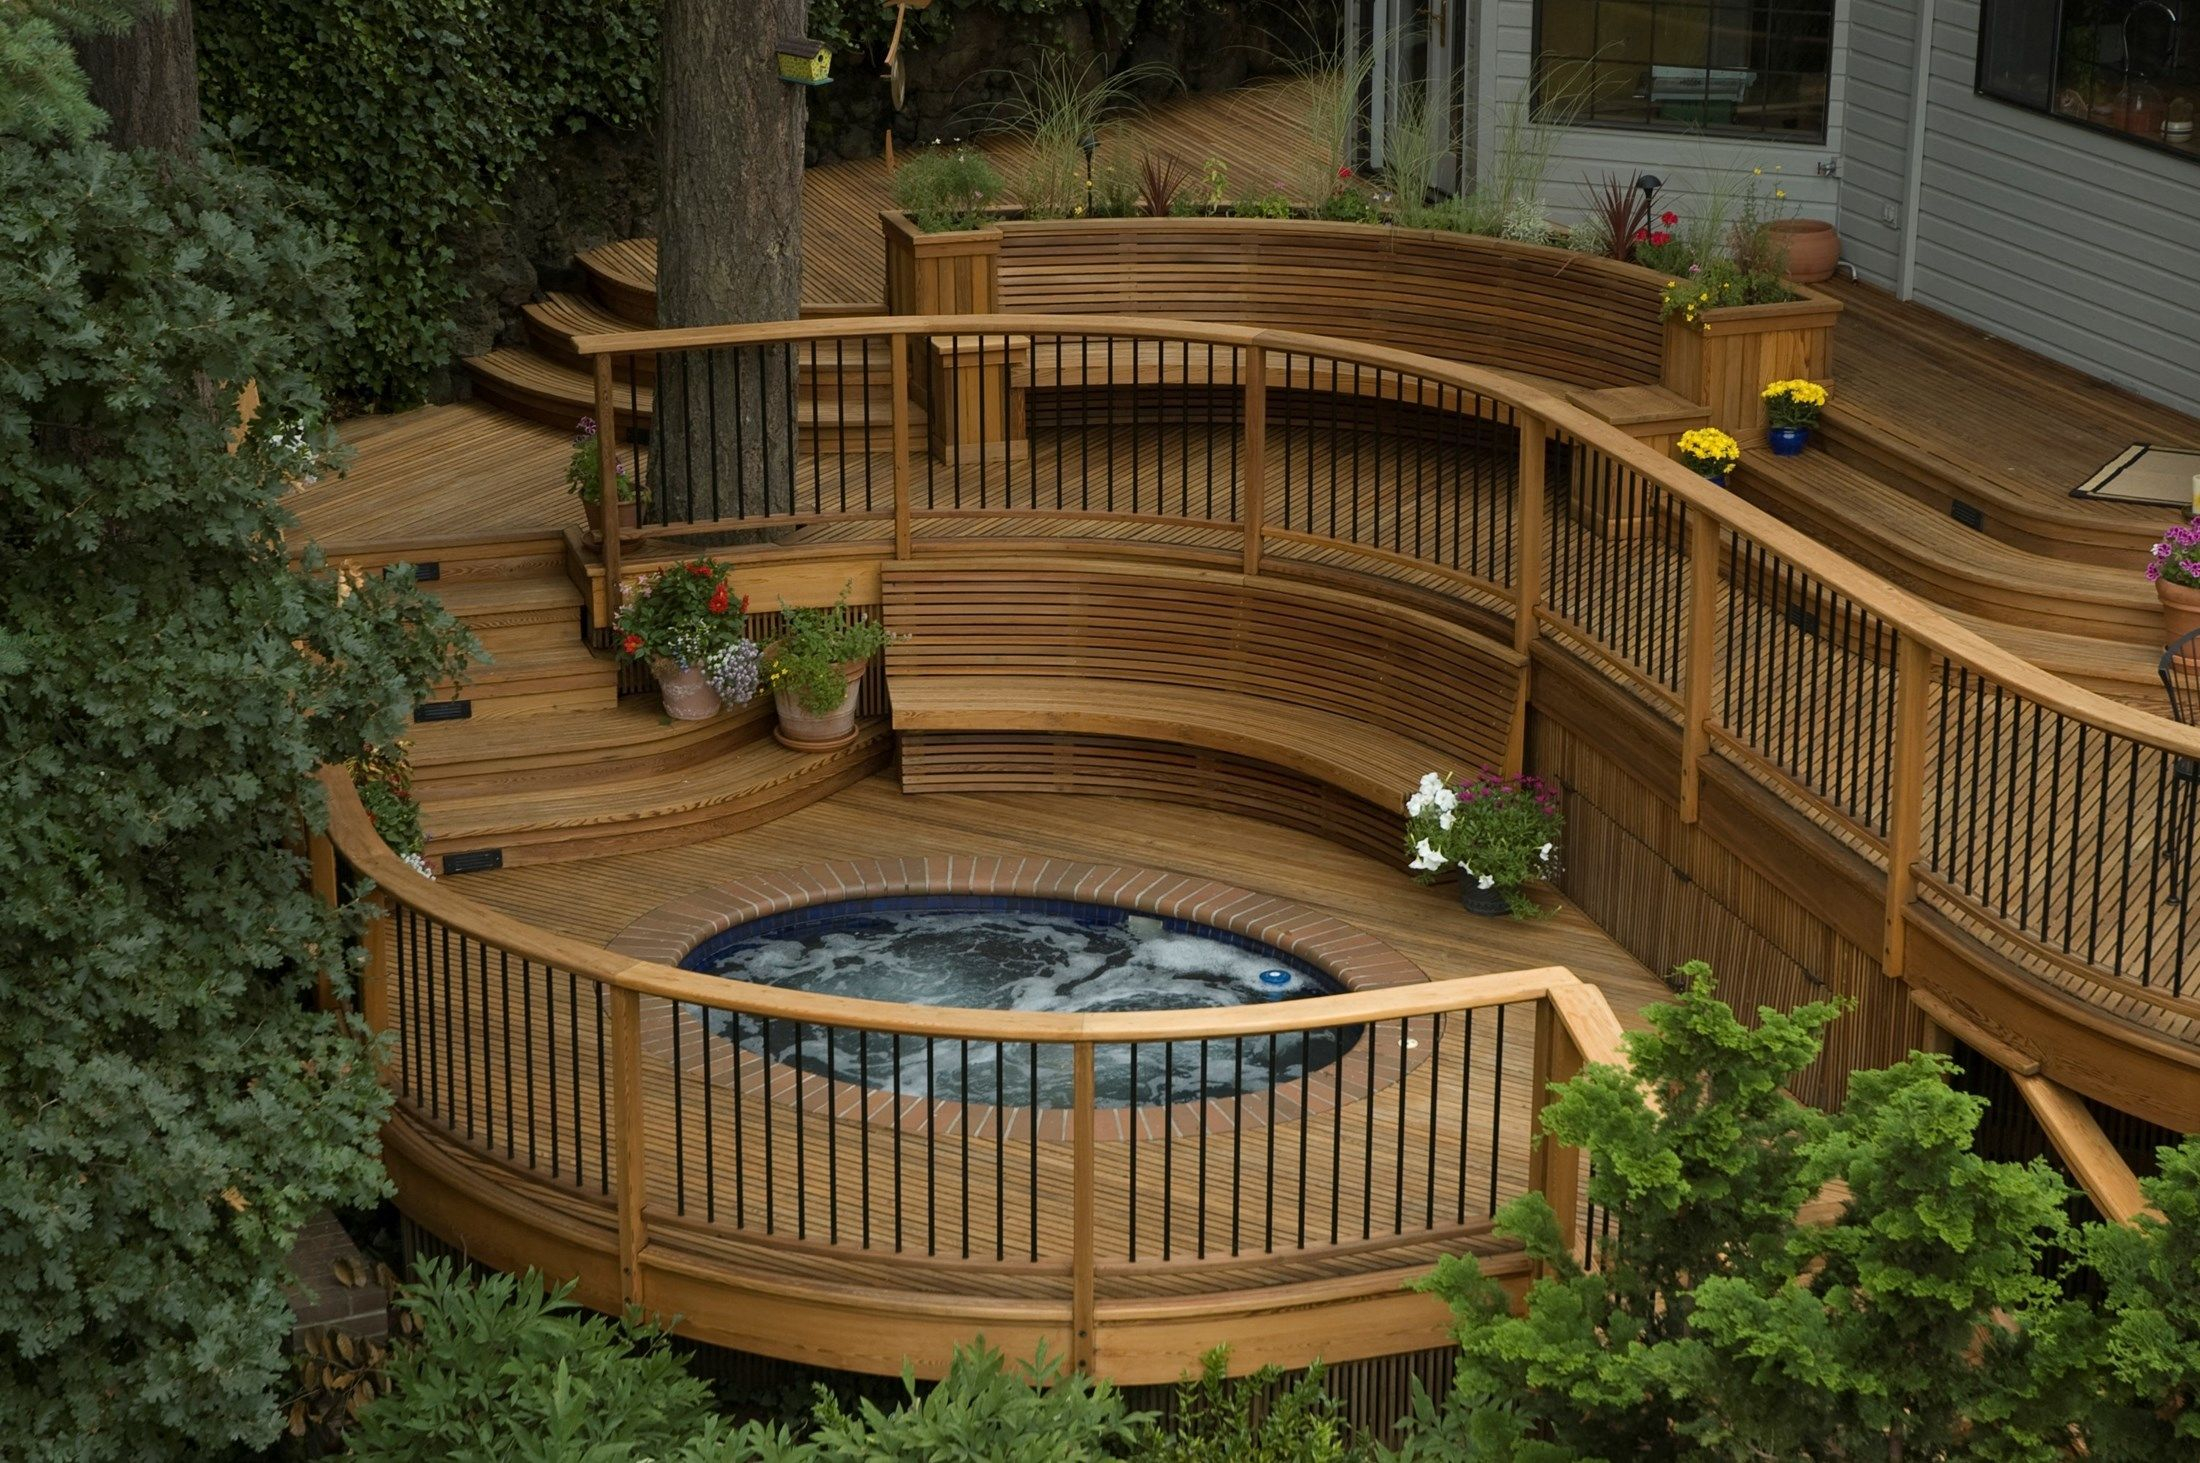 Deck Ideas Designs Pictures Photogallery Decks intended for Backyard Decks And Patios Ideas